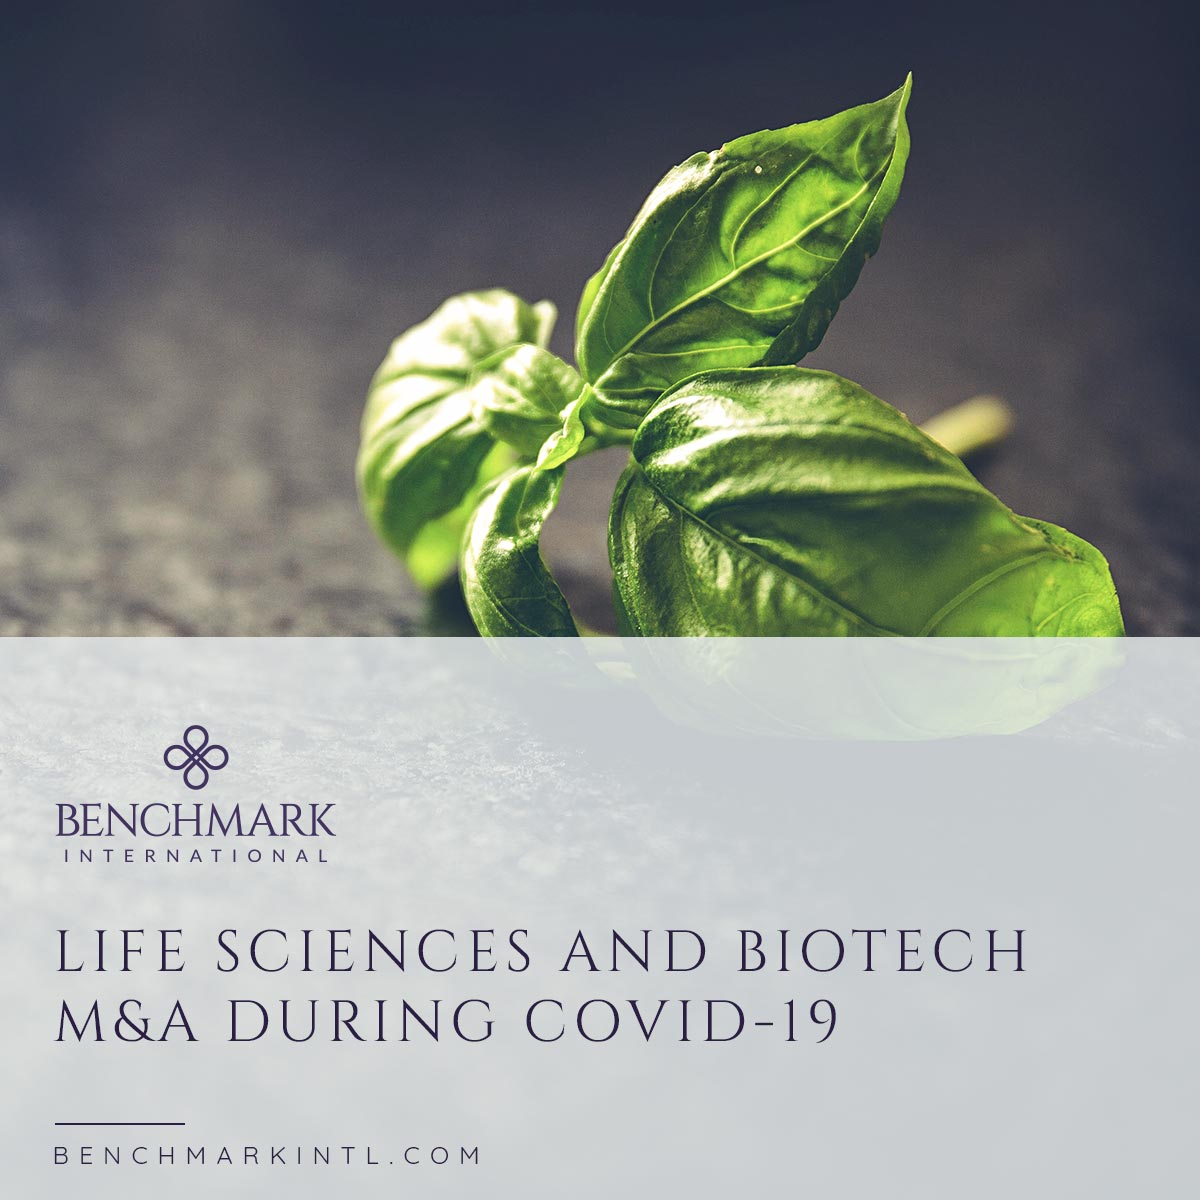 Life_Sciences_and_Biotech_M&A_During_COVID-19_social(4)